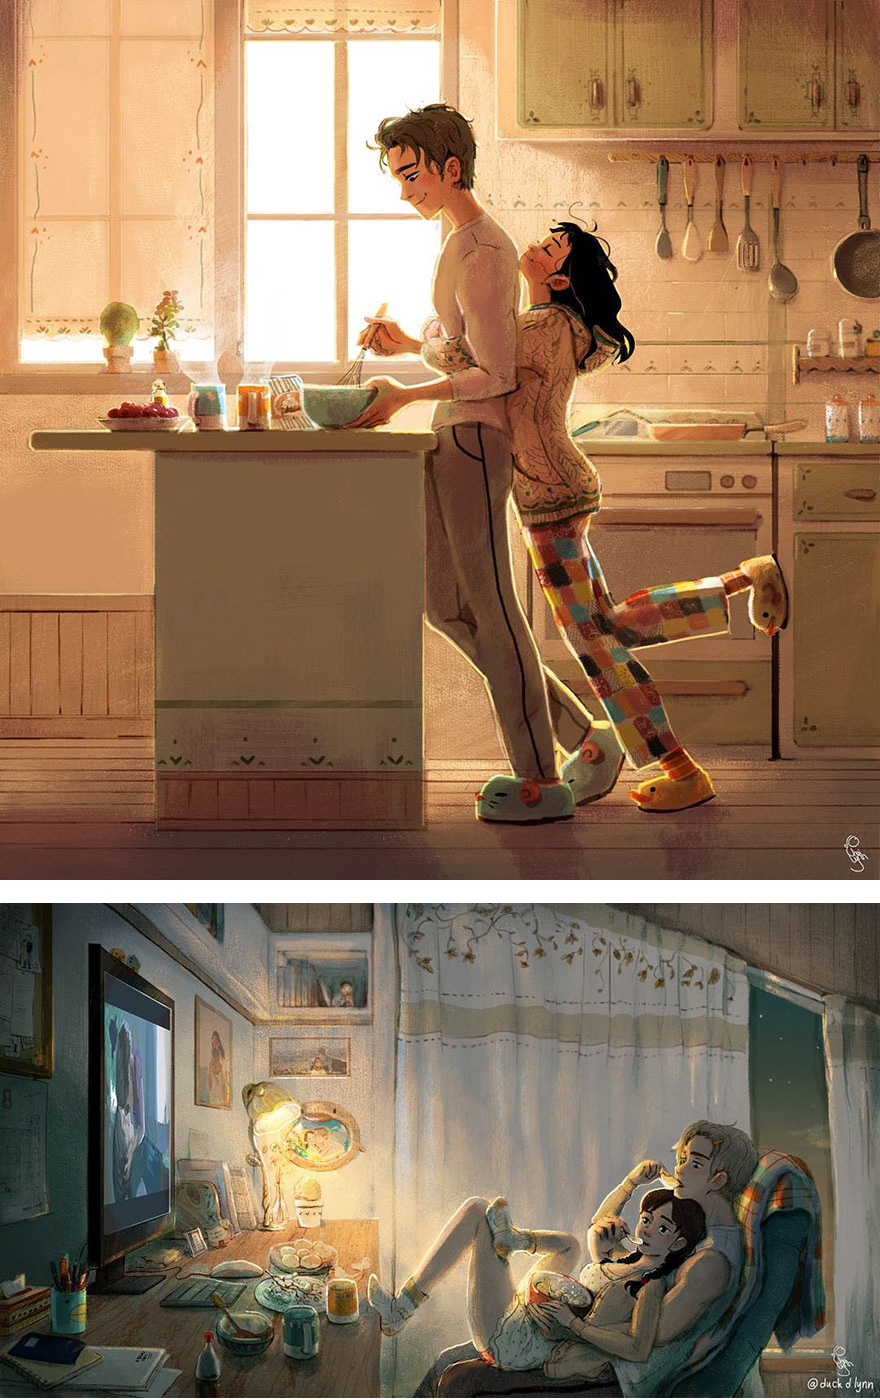 7 Sweet Illustrations Prove That Love Is In The Little Things